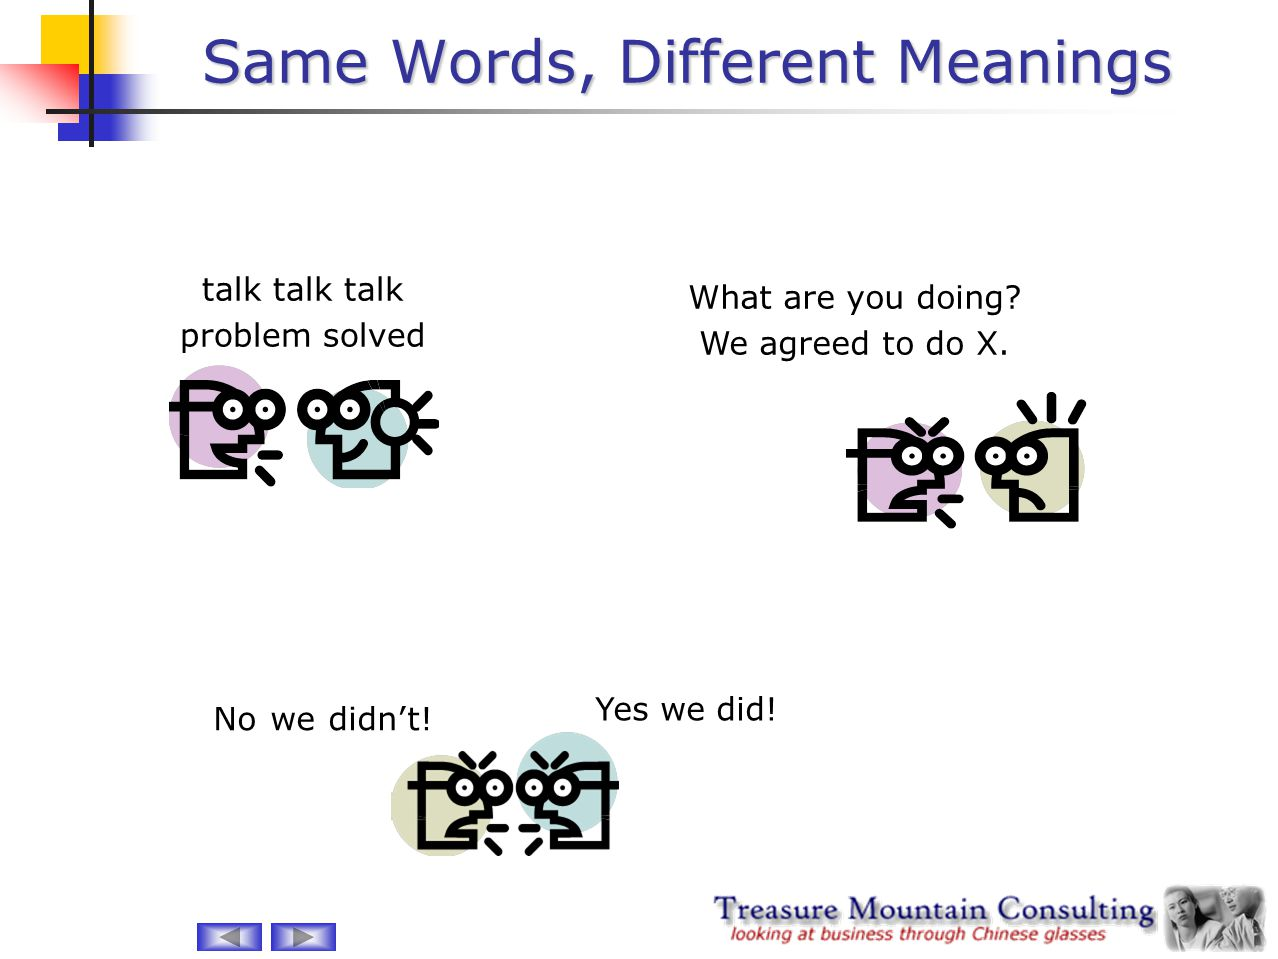 Same Words, Different Meanings What are you doing? We agreed to do X. talk talk talk problem solved No we didn't! Yes we did!